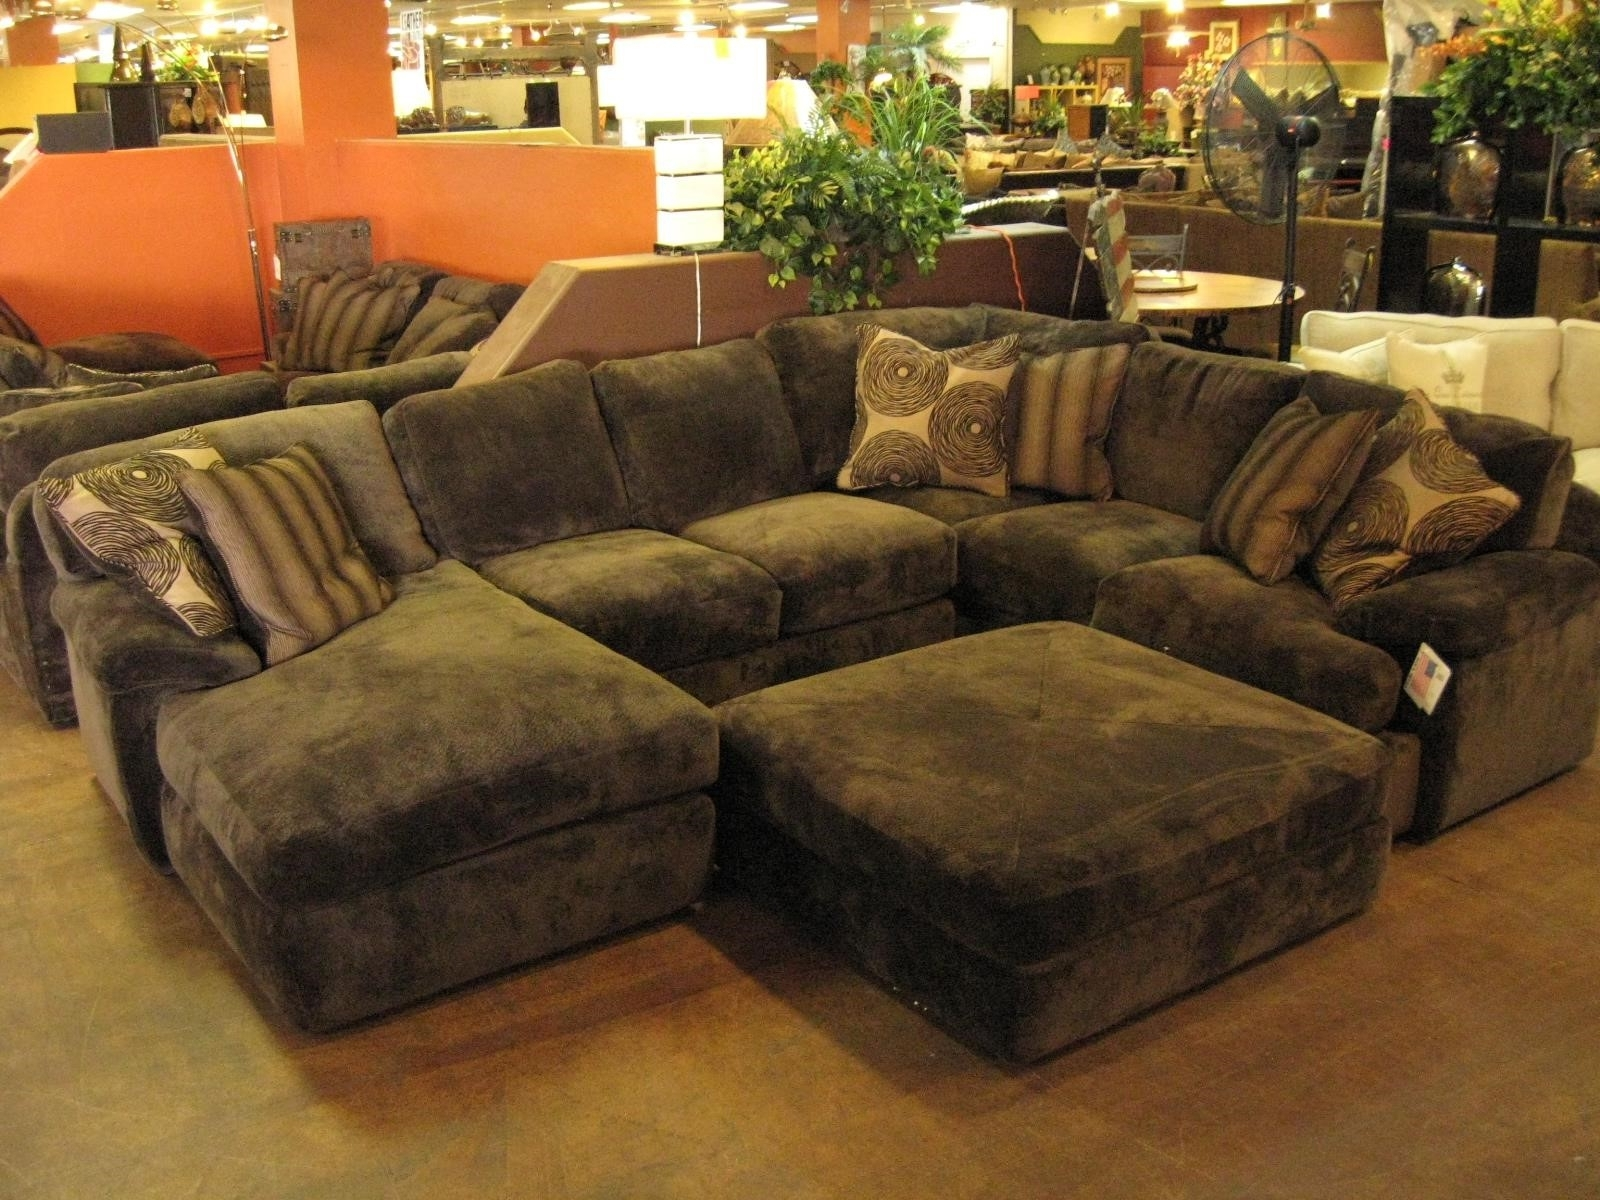 Sofa : Magnificent Large Sectional Sofa With Chaise Reclining Inside Widely Used Oversized Sectional Sofas (View 10 of 15)